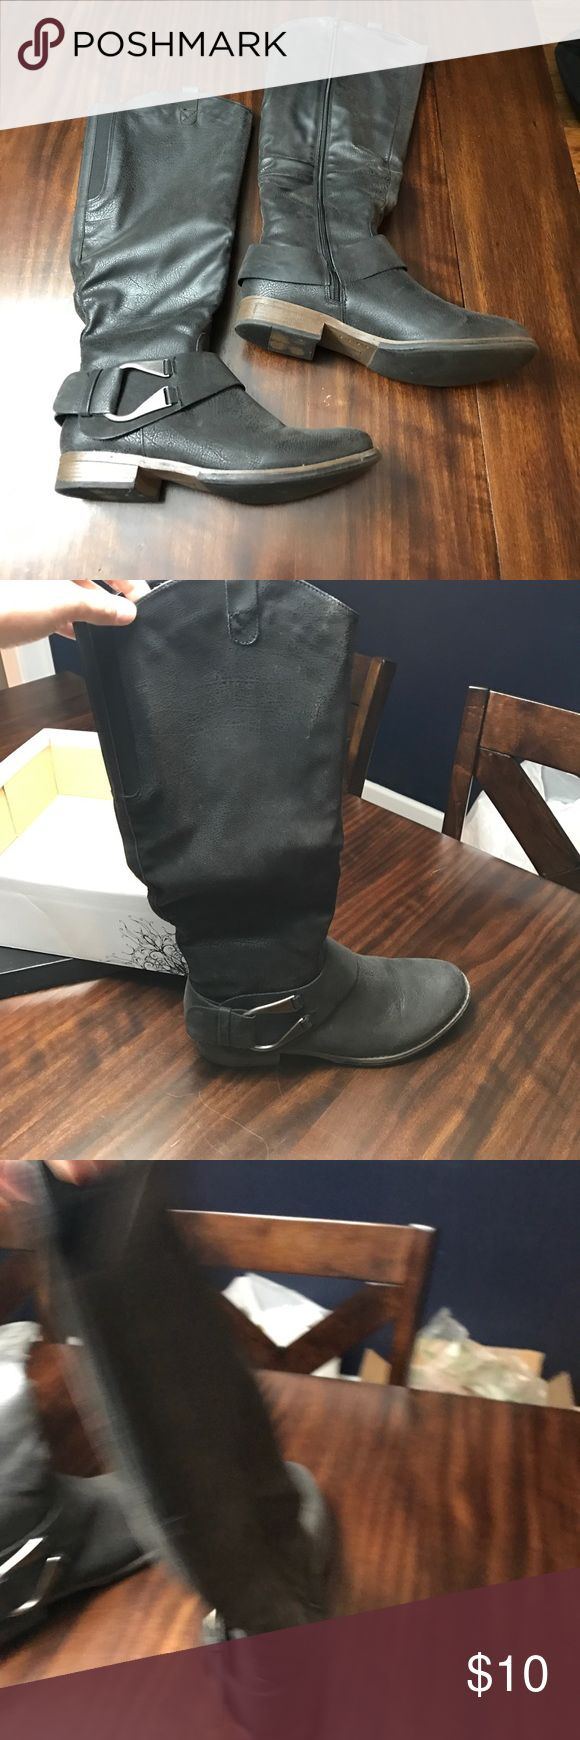 11- black leather riding boots Size 11 black leather riding boots with large buckle. Practically new Shoes Heeled Boots